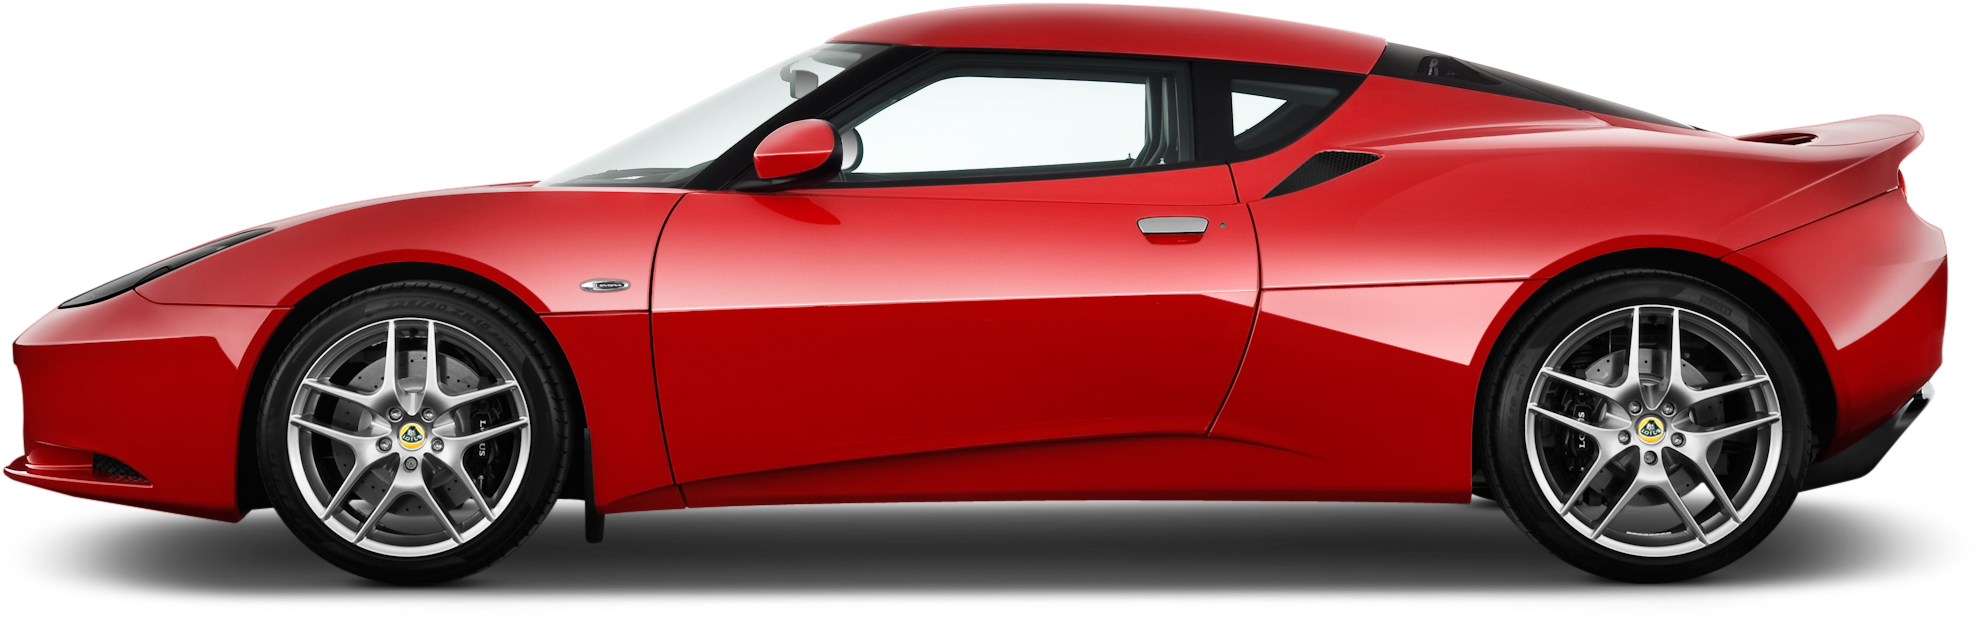 Download Lotus Car Png Ferrari 458 Italia Side View Png Image With No Background Pngkey Com